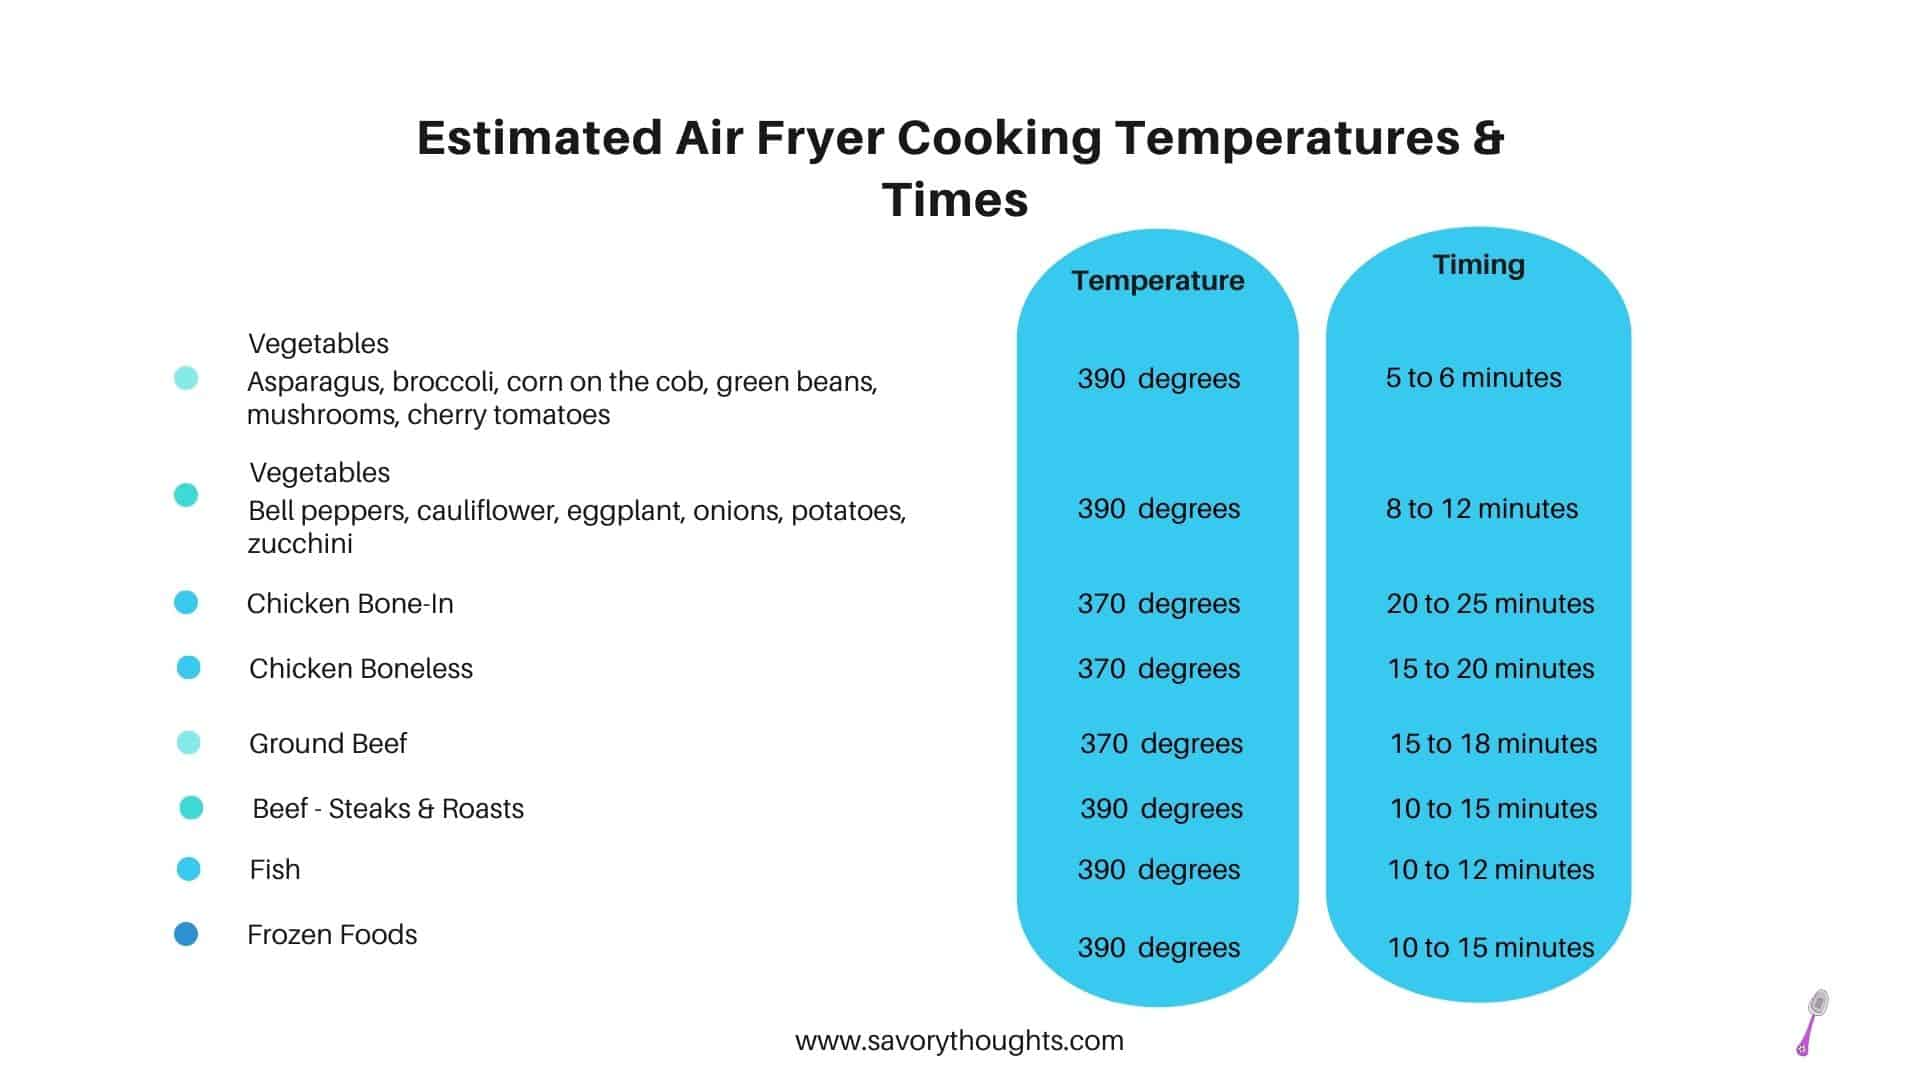 Estimated air fryer cooking temperature and times chart